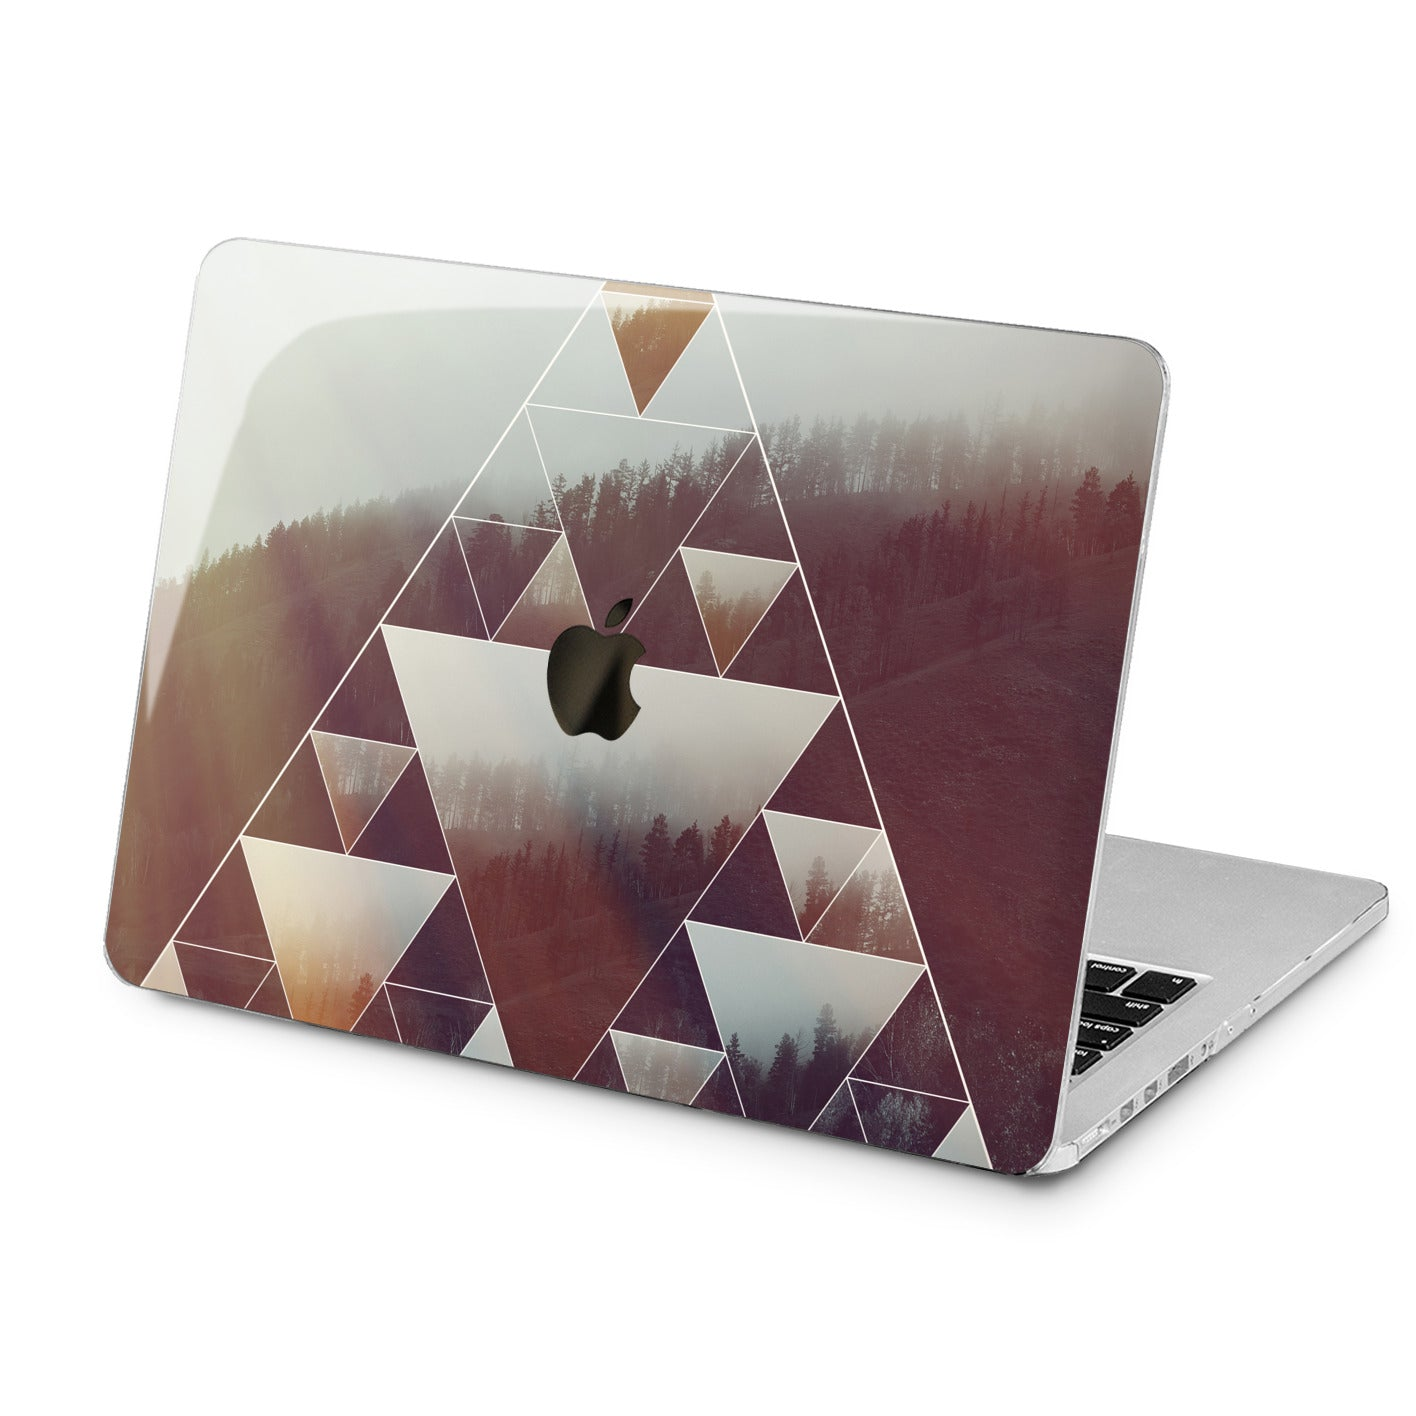 Lex Altern Lex Altern Geometric Forest Case for your Laptop Apple Macbook.